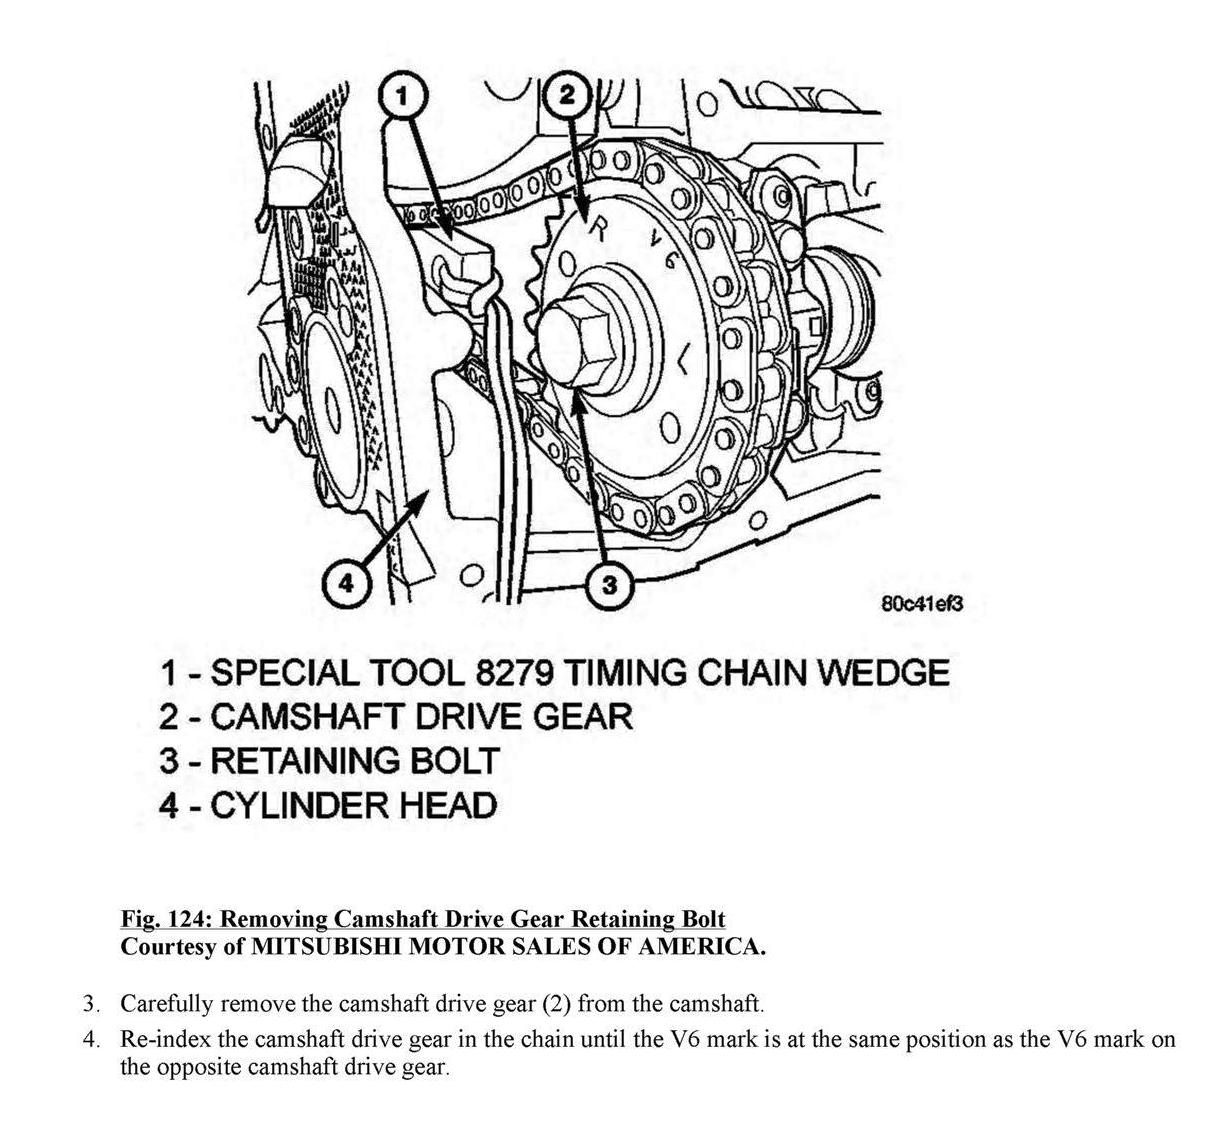 On My 37 V6 Engine There Are 2 Plated Timing Chain Link Covers 2005 Jeep Liberty 3 7 Diagram 8 Graphic